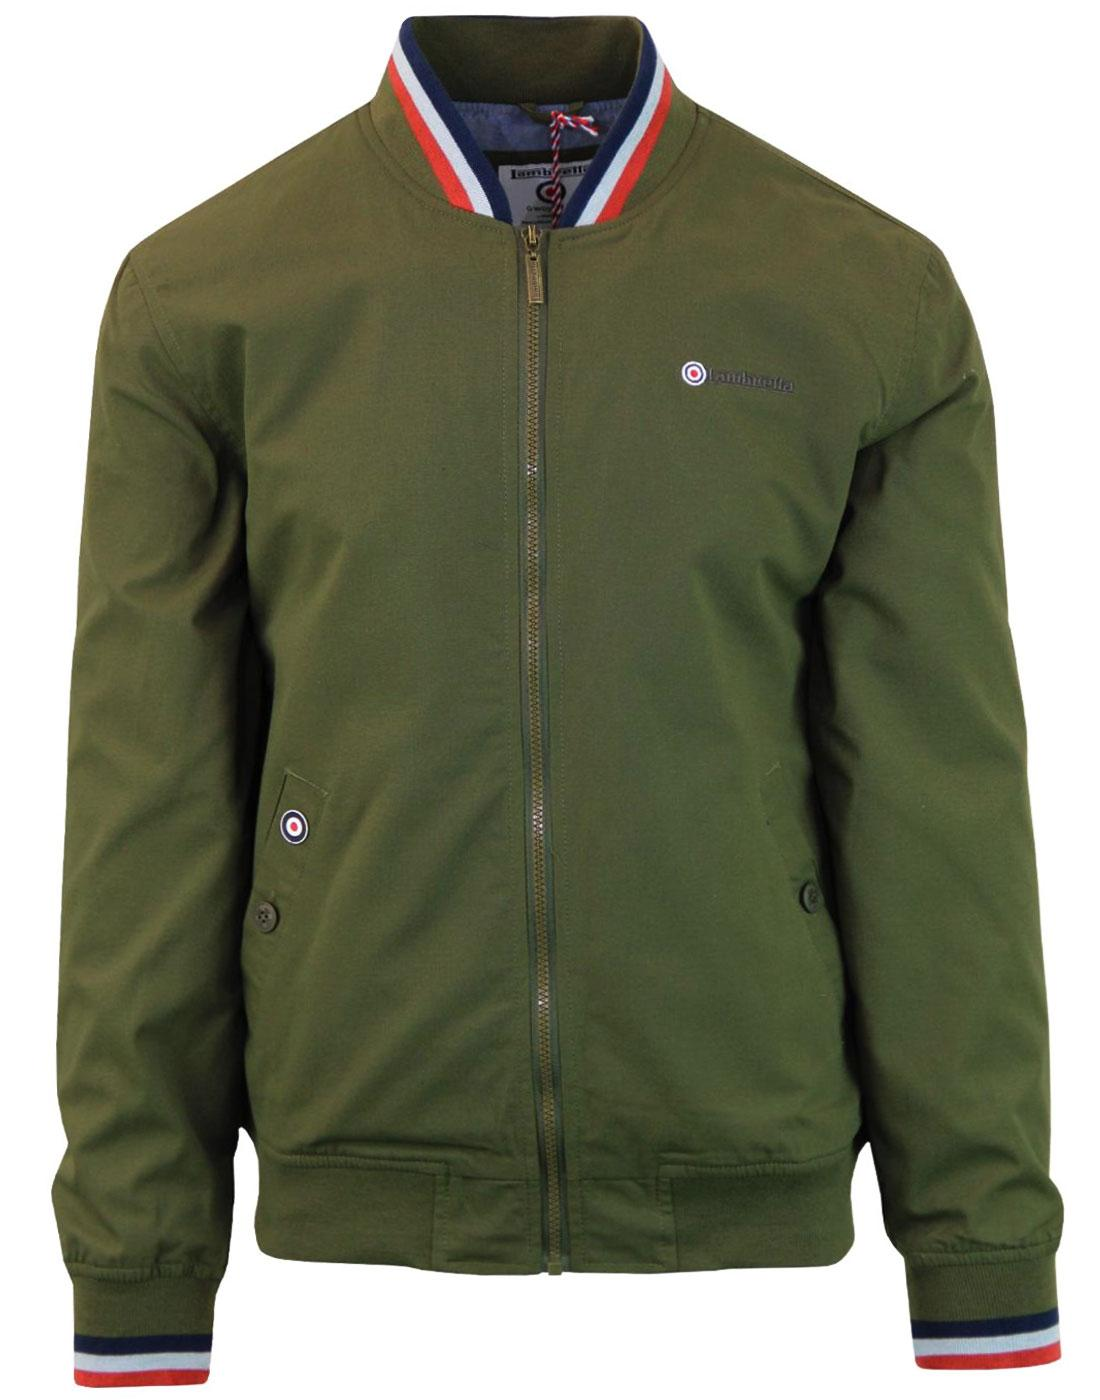 LAMBRETTA Retro Mod Tipped Monkey Jacket (MOSS)